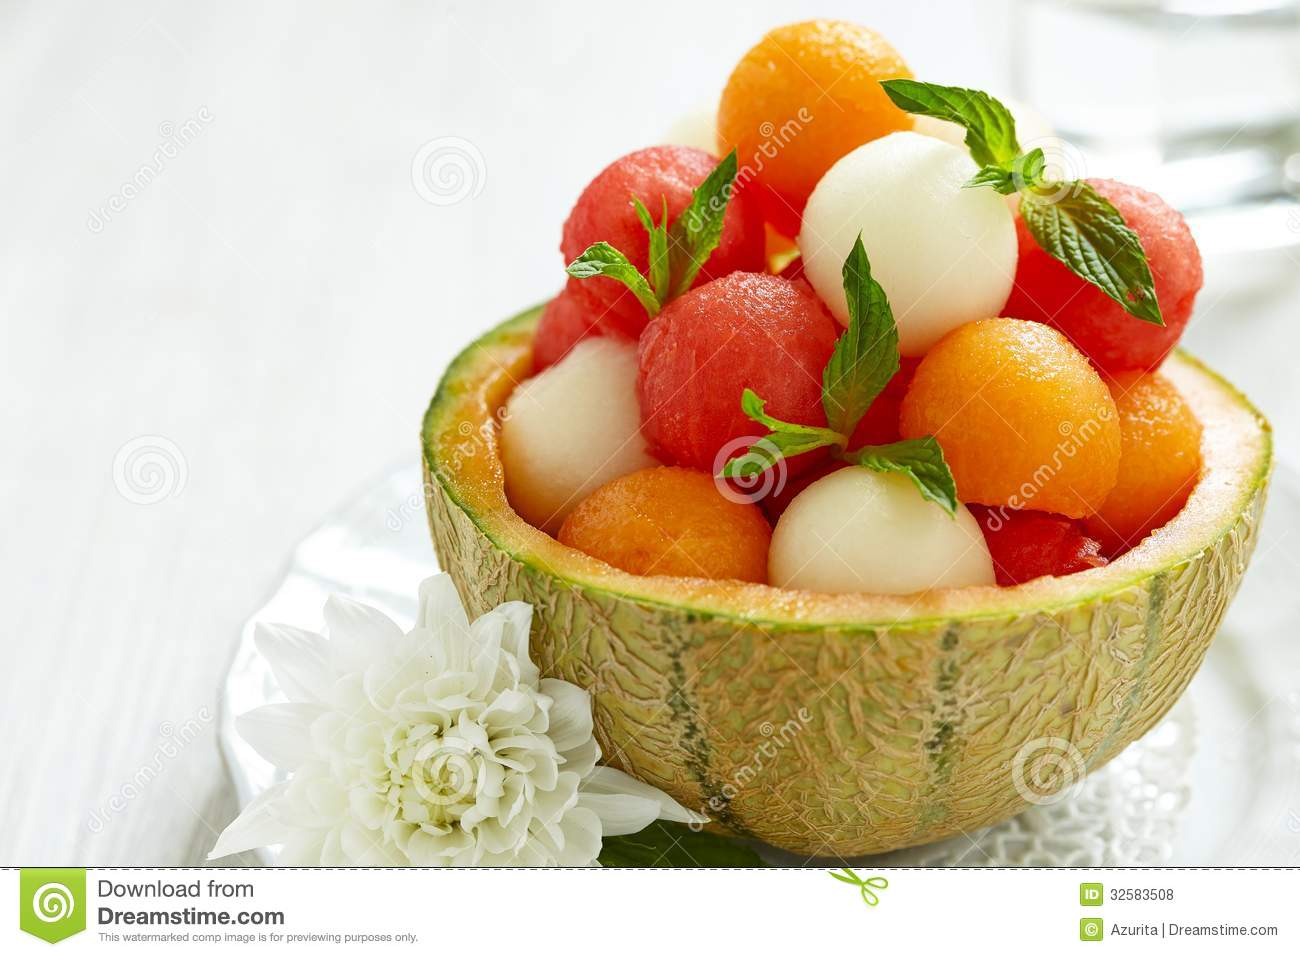 Fruit Salad With Watermelon And Melon Balls Royalty Free Stock Photos ...